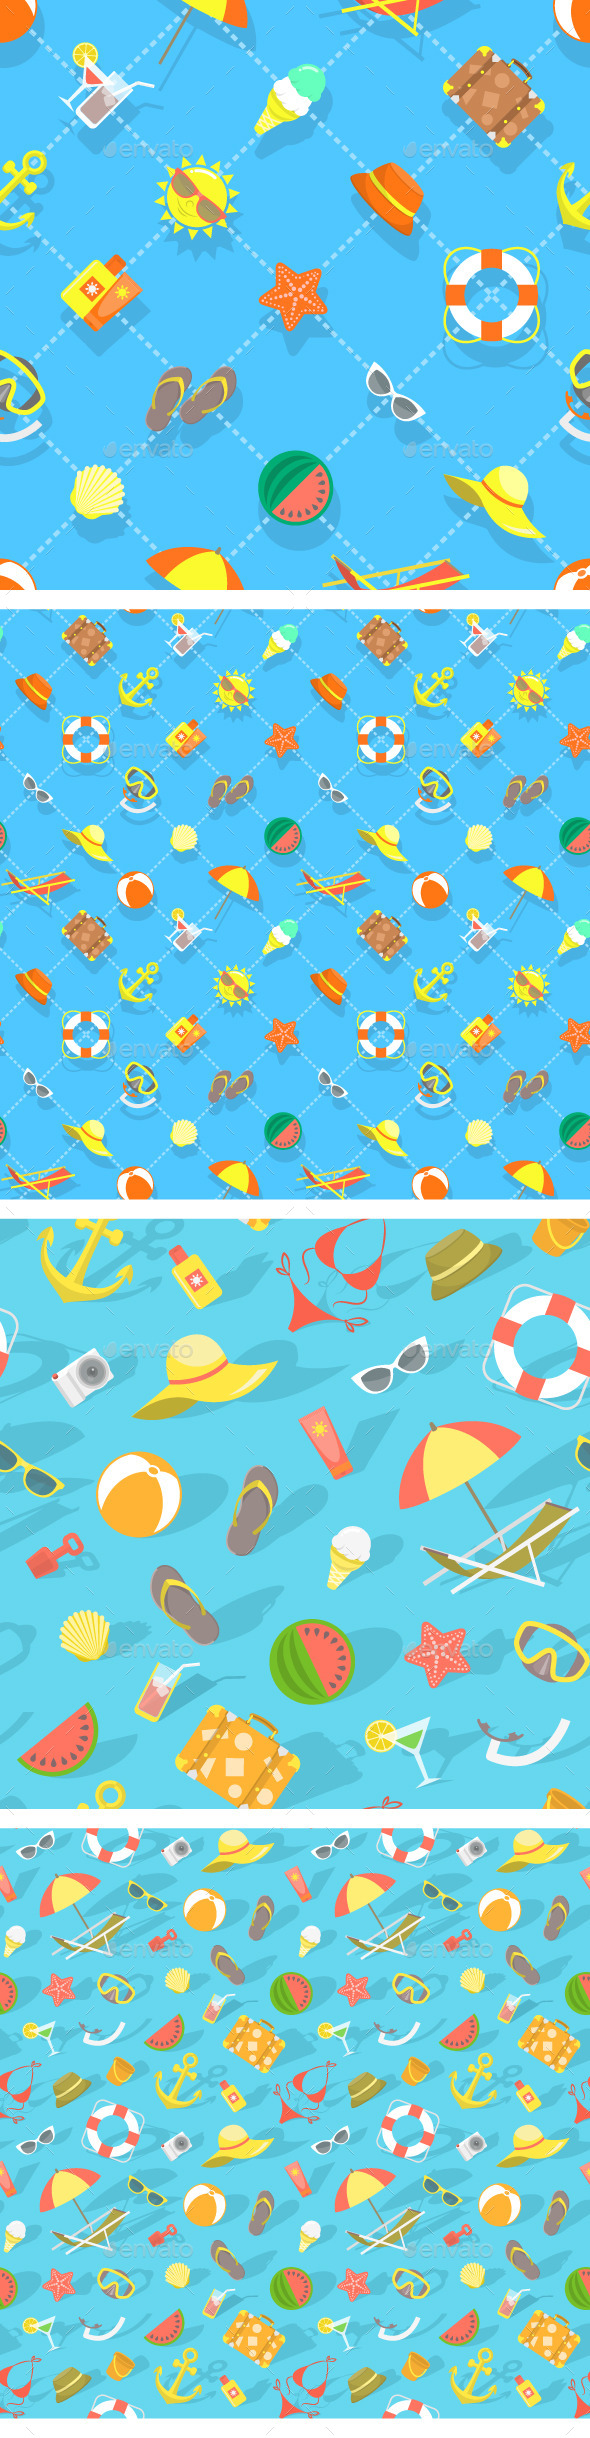 Summer Vacation Beach Icons Flat Seamless Pattern - Patterns Decorative